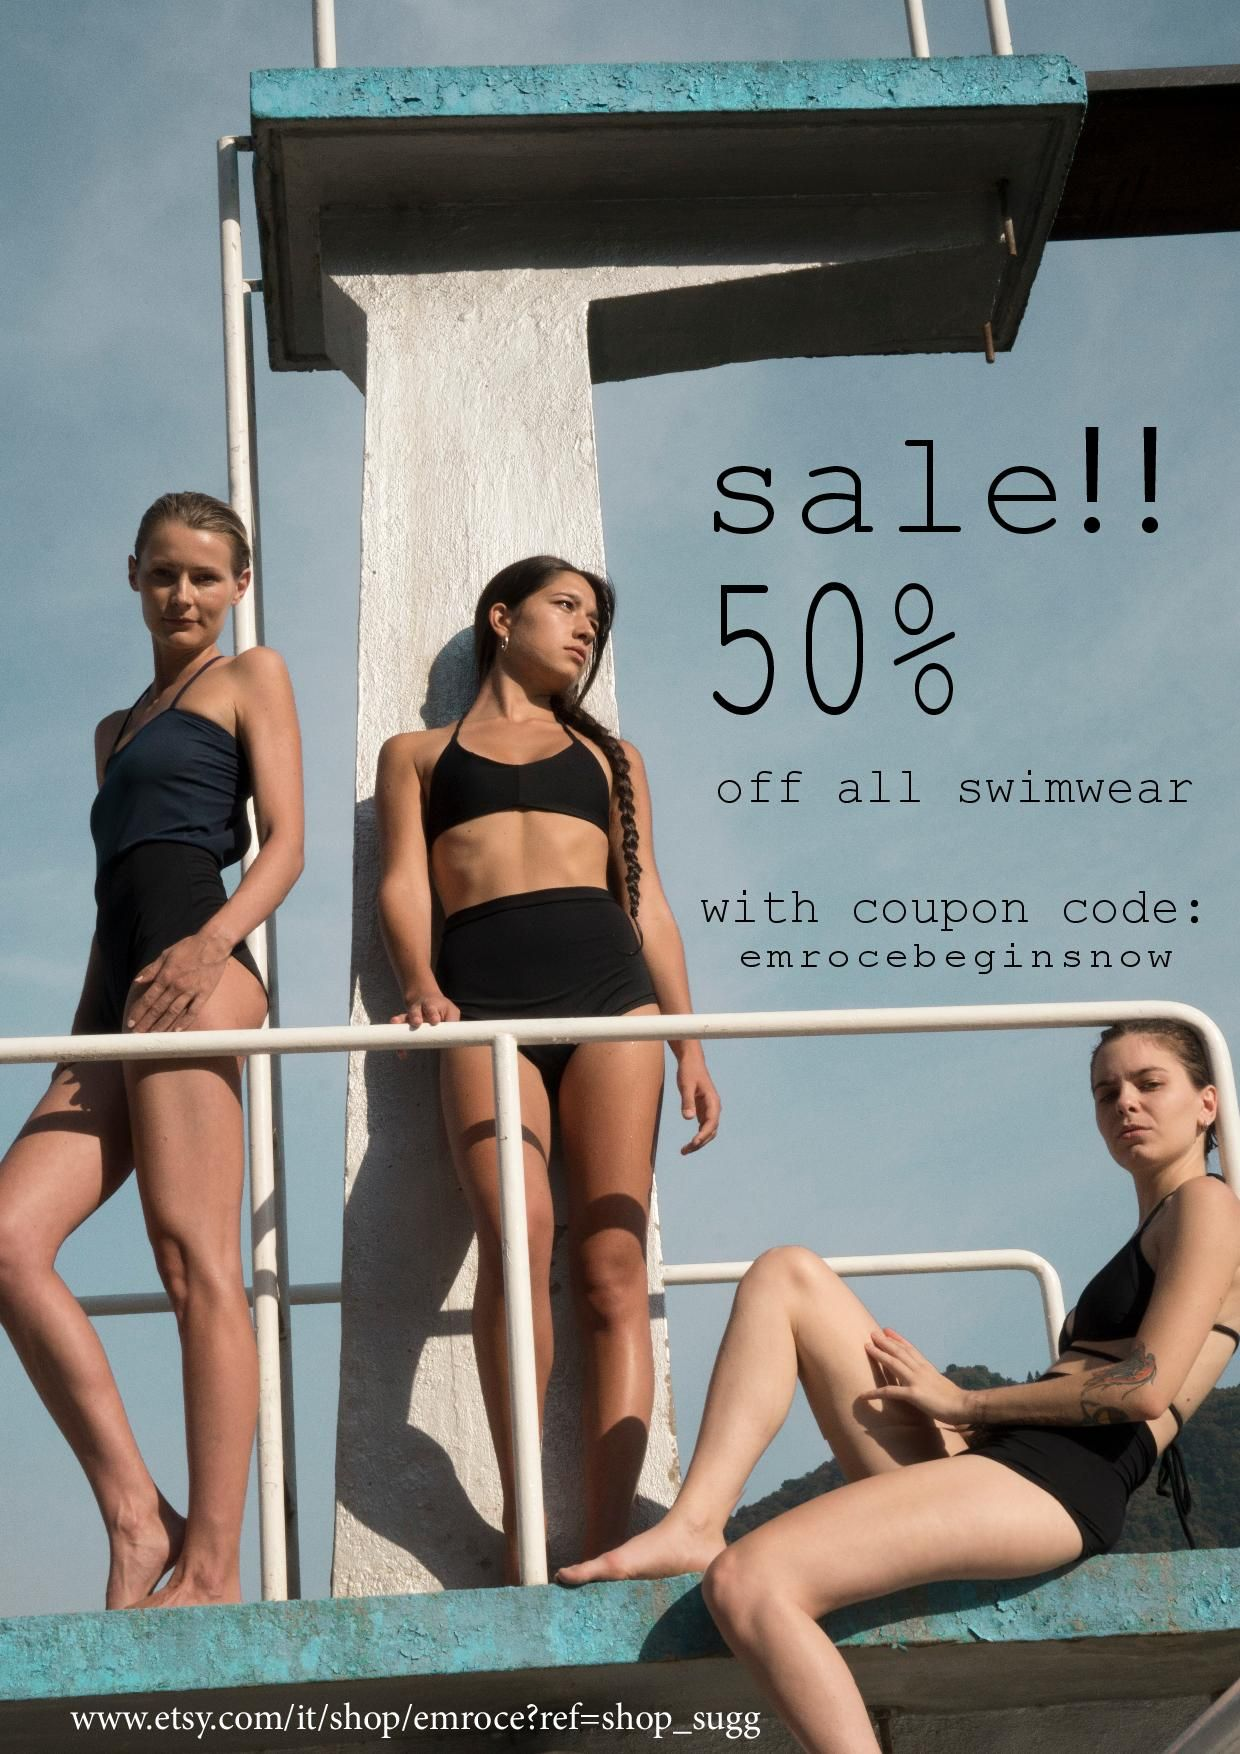 c5dec5e6f9b5b swimwear sale poster 50%off | deco del mar | Swimwear sale, Swimwear ...